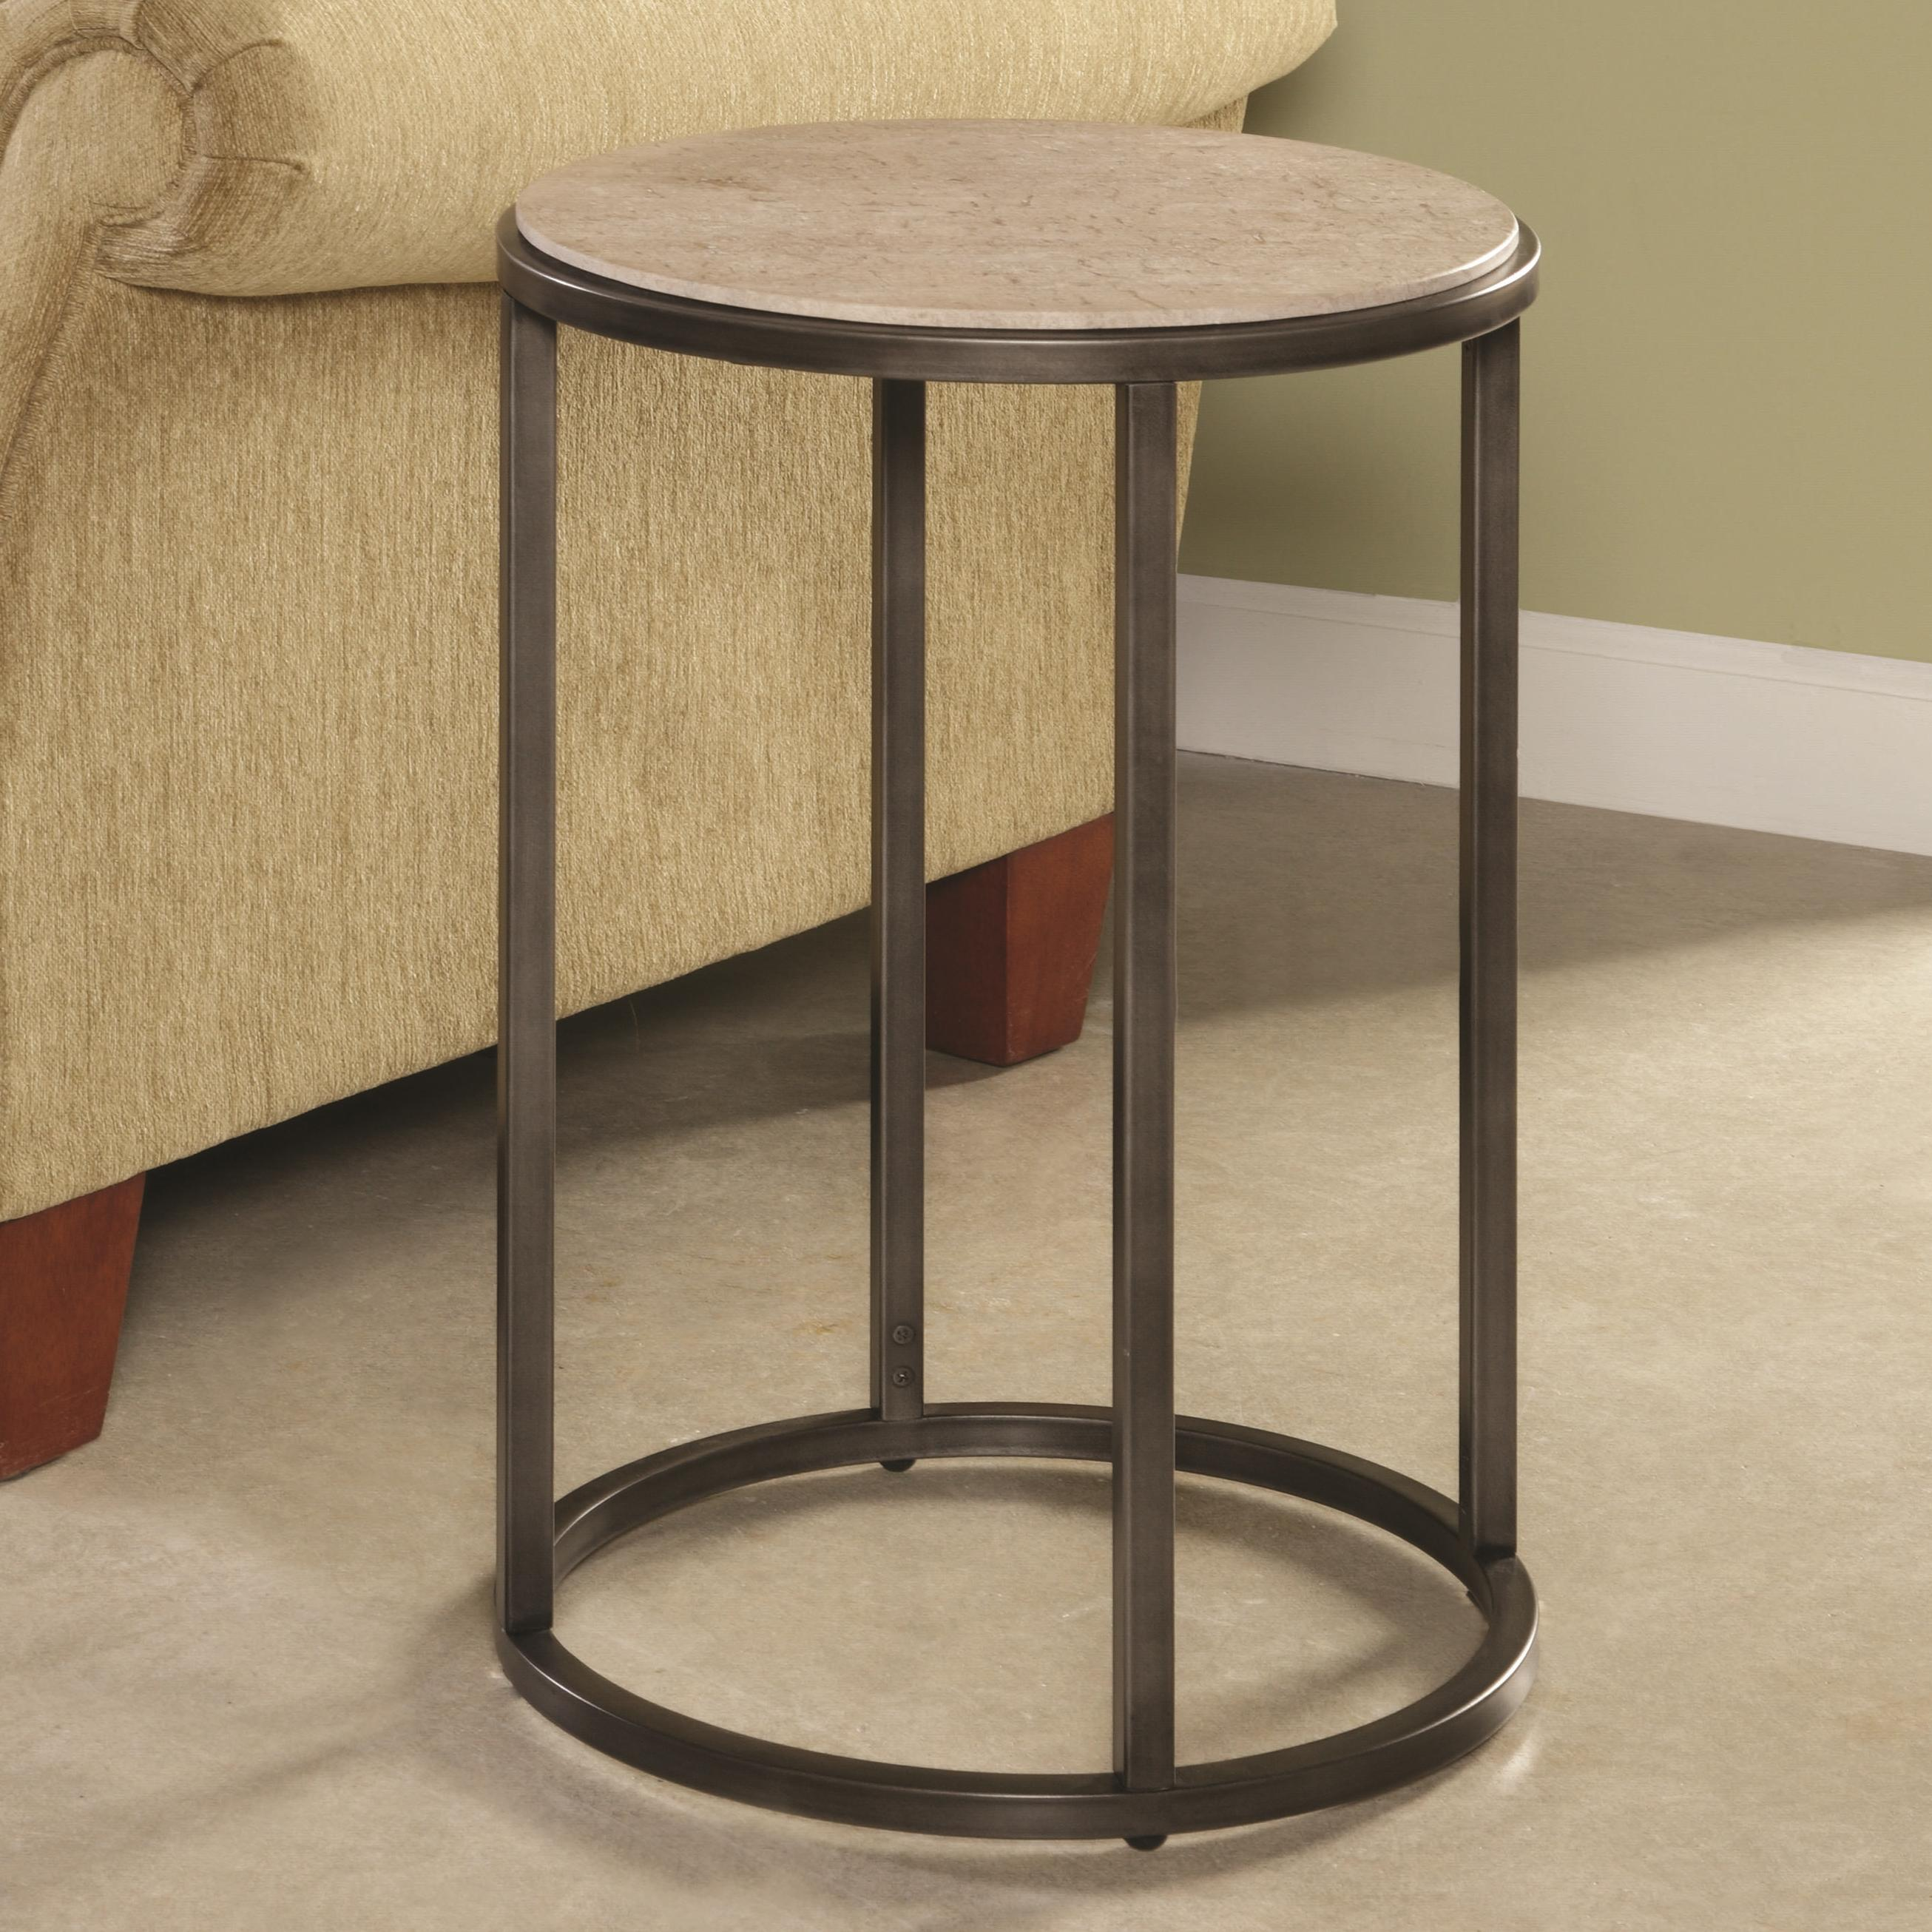 Hammary Modern Basics Round End Table - Item Number: 190-918